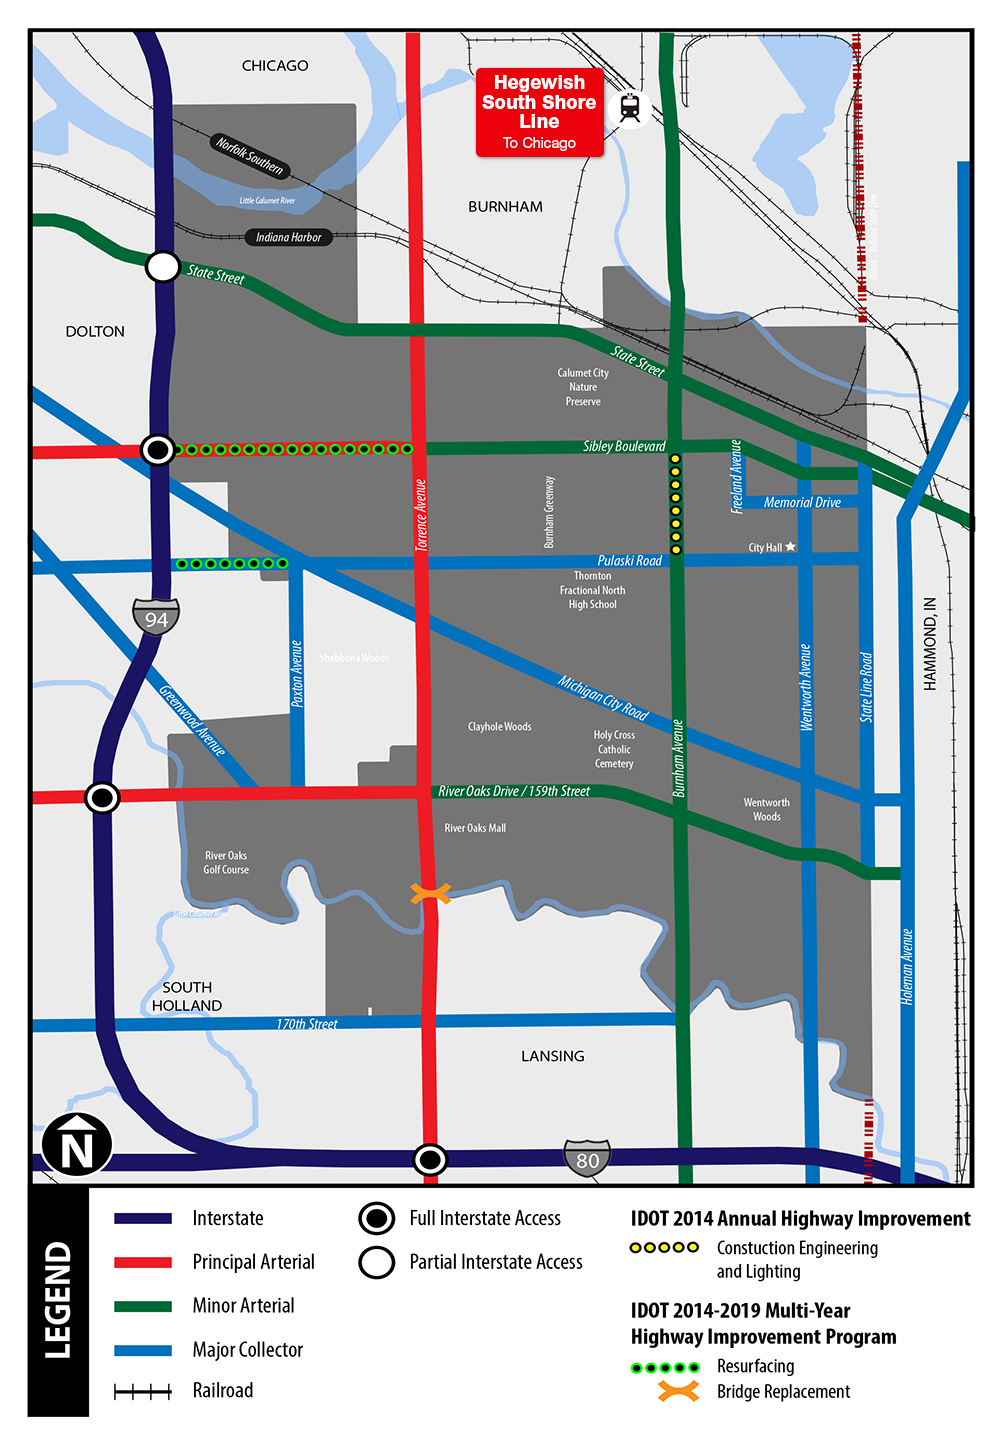 Develop Calumet City Illinois Transportation on hwy 90 map, national highway system map, united states interstate and highway map, i-70 highway map, interstate highway system, i-35 highway map, interstate 40 map, interstate 27 highway map, interstate 80 highway map, interstate 71 highway map, interstate 55 highway map, pa interstate highway map, interstate 95 highway map, interstate 10 highway map, interstate 75 highway map, interstate 81 highway map, eastern interstate highway map, interstate 70 map, us interstate highway map, i-75 highway map,